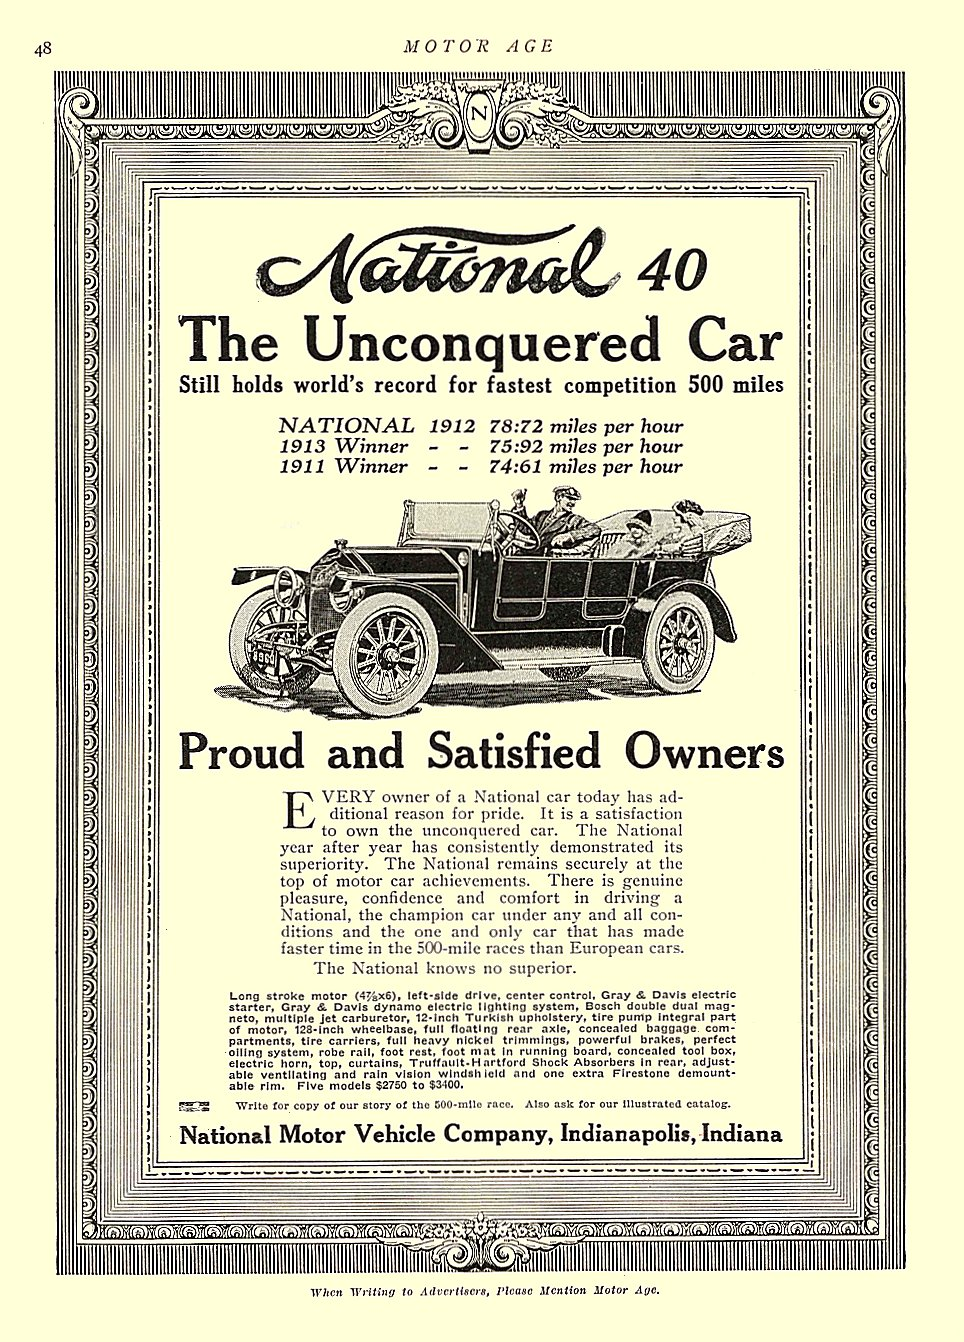 1913 6 12 NATIONAL The unconquered car Proud and Satisfied Owners National Motor Vehicle Co. Indianapolis, Indiana MOTOR AGE June 12, 1913 8.5″x11.5″ University of Minnesota Library page 48